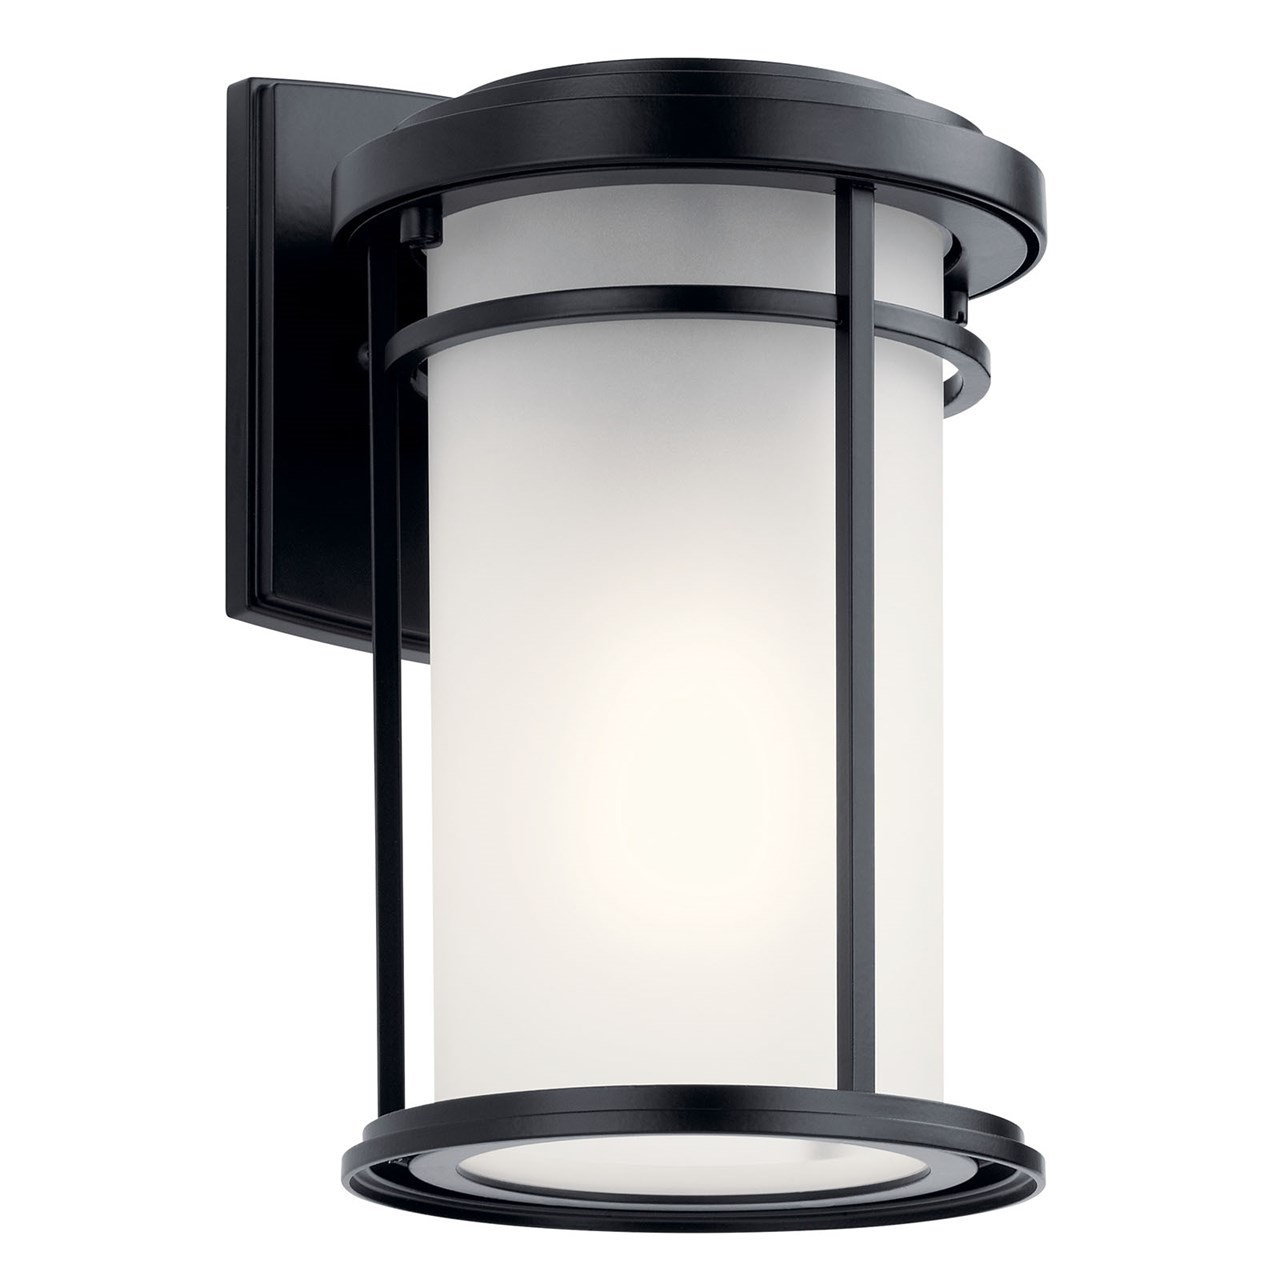 KIC 49686BK 1X75M Toman Black Outdoor Wall Light NEWSTOCK MAR 2019